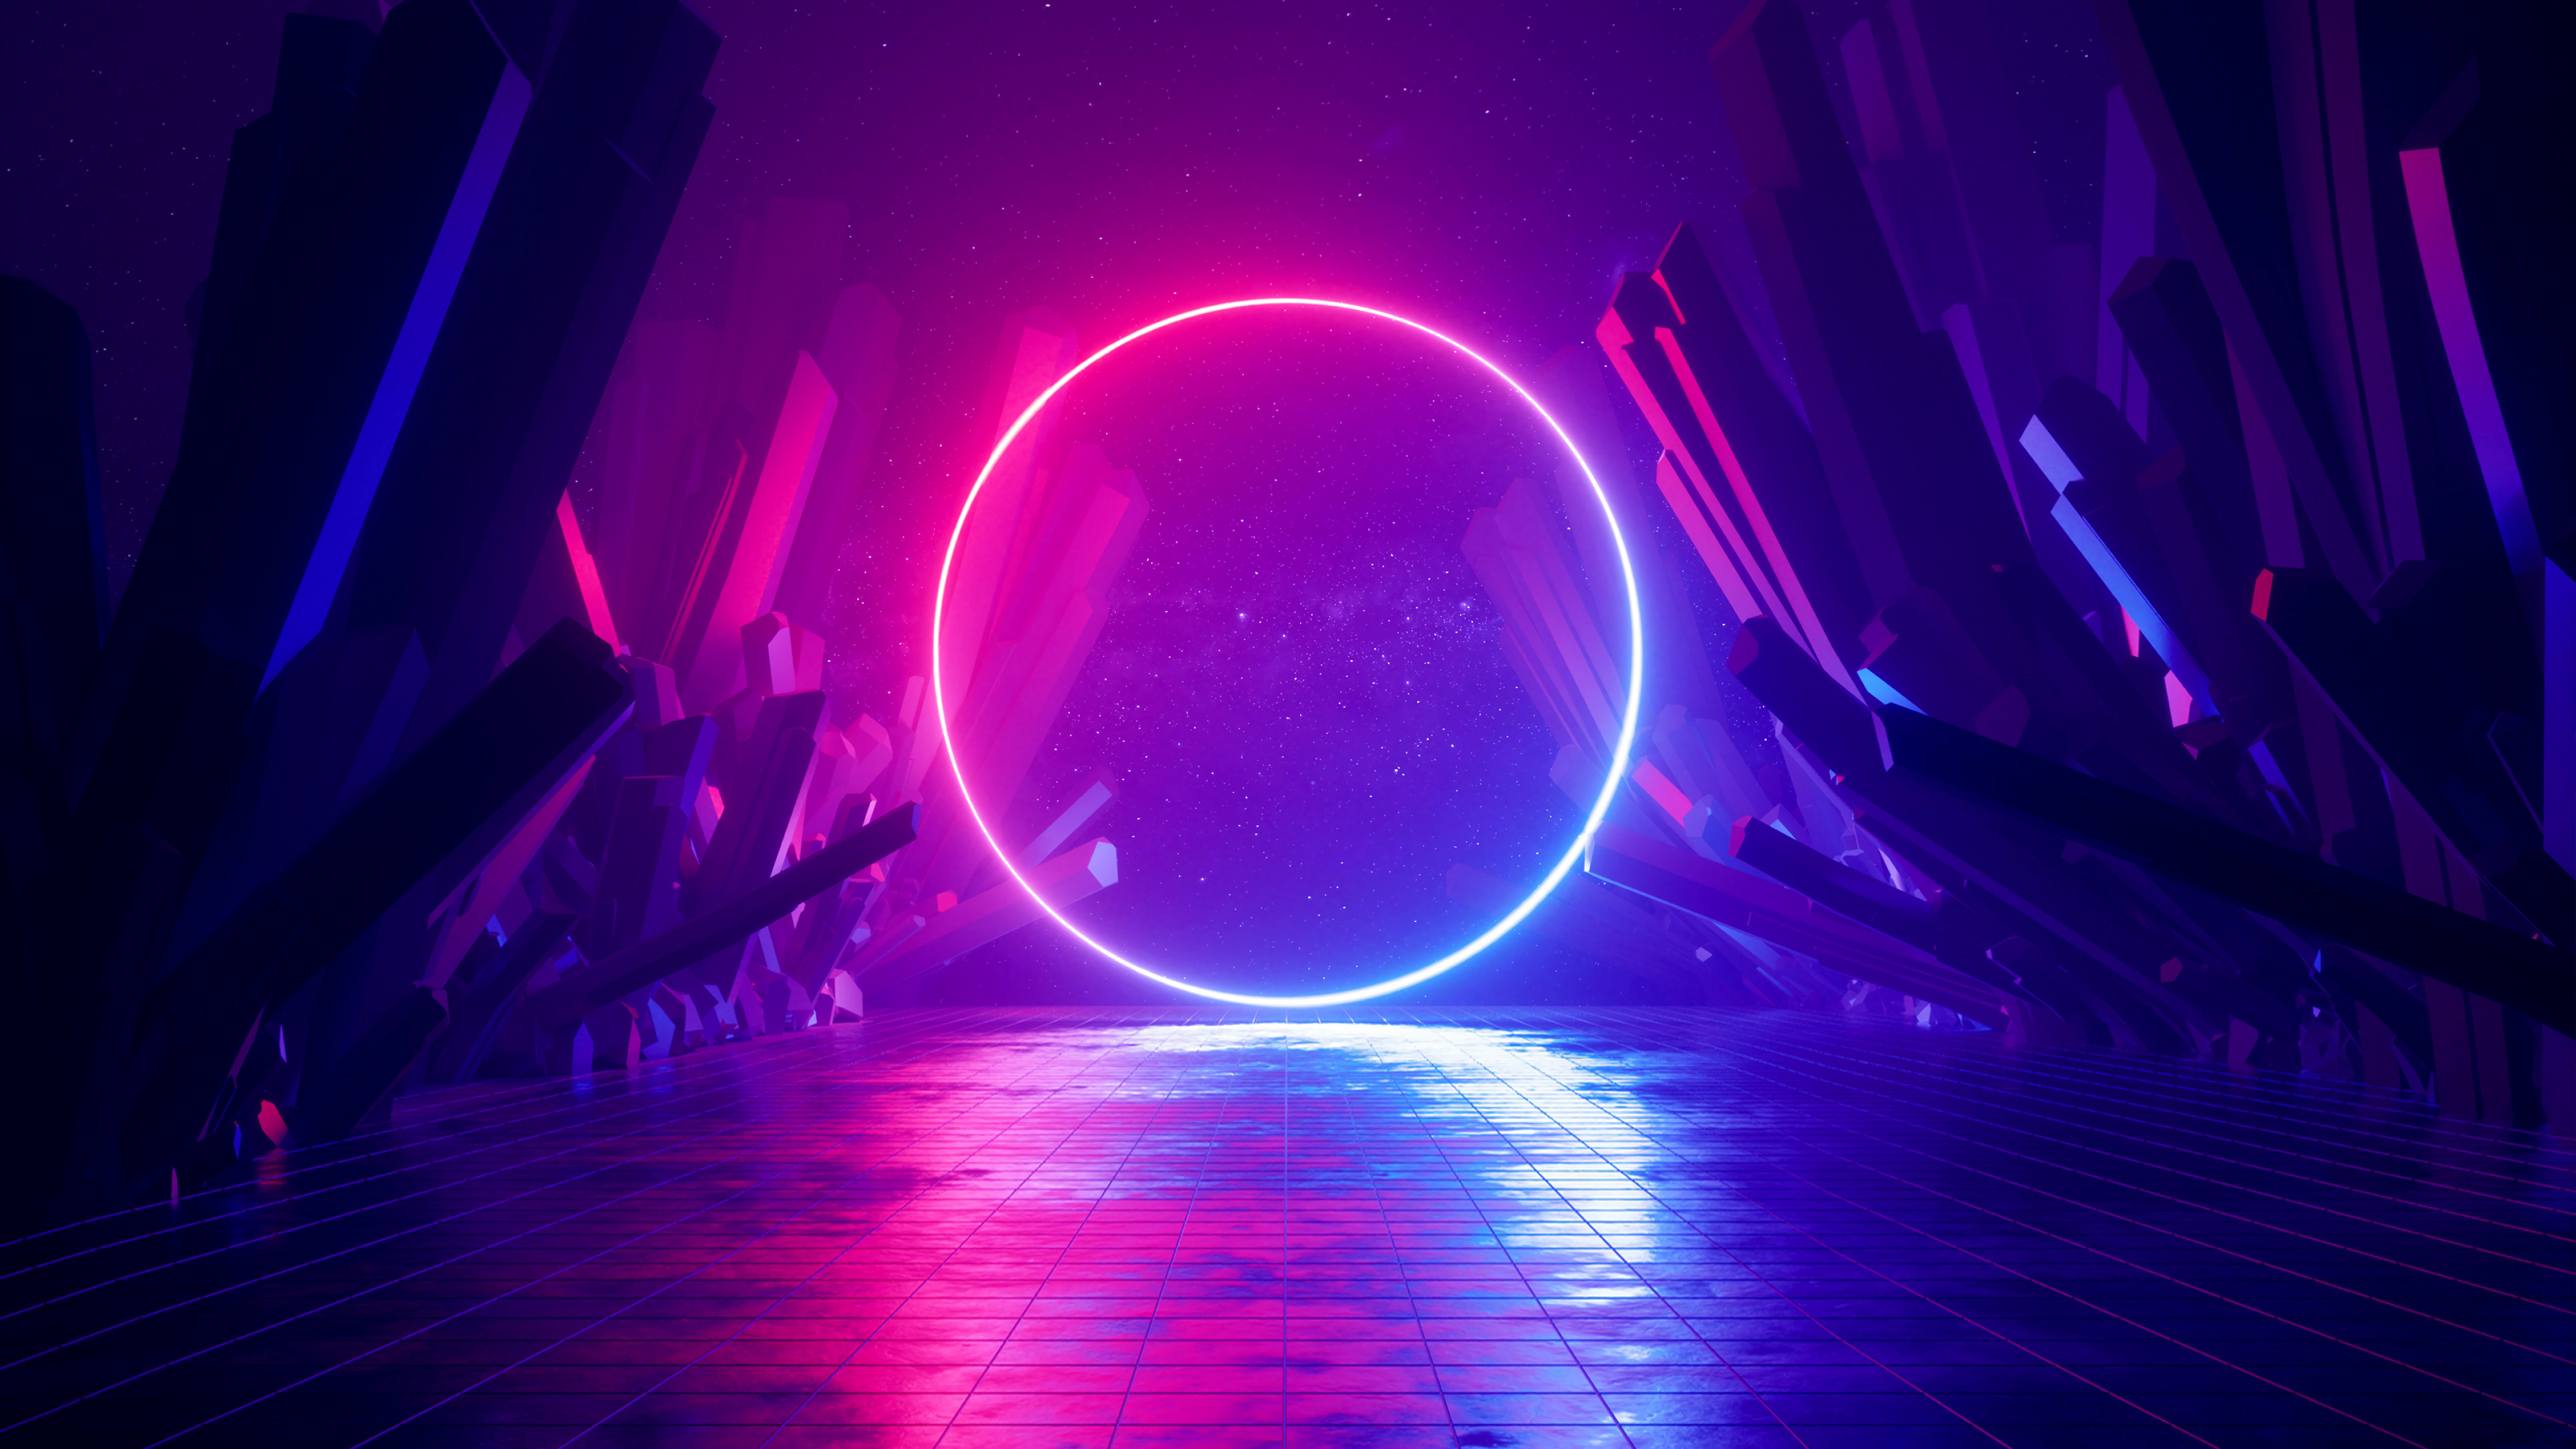 General 3840x2160 digital art illustration abstract neon neon lights lights reflection colorful glowing neon glow purple blue pink dark shadow rocks circle 3D Abstract space galaxy landscape virtual reality science fiction 3D Ultraviolet rings shards